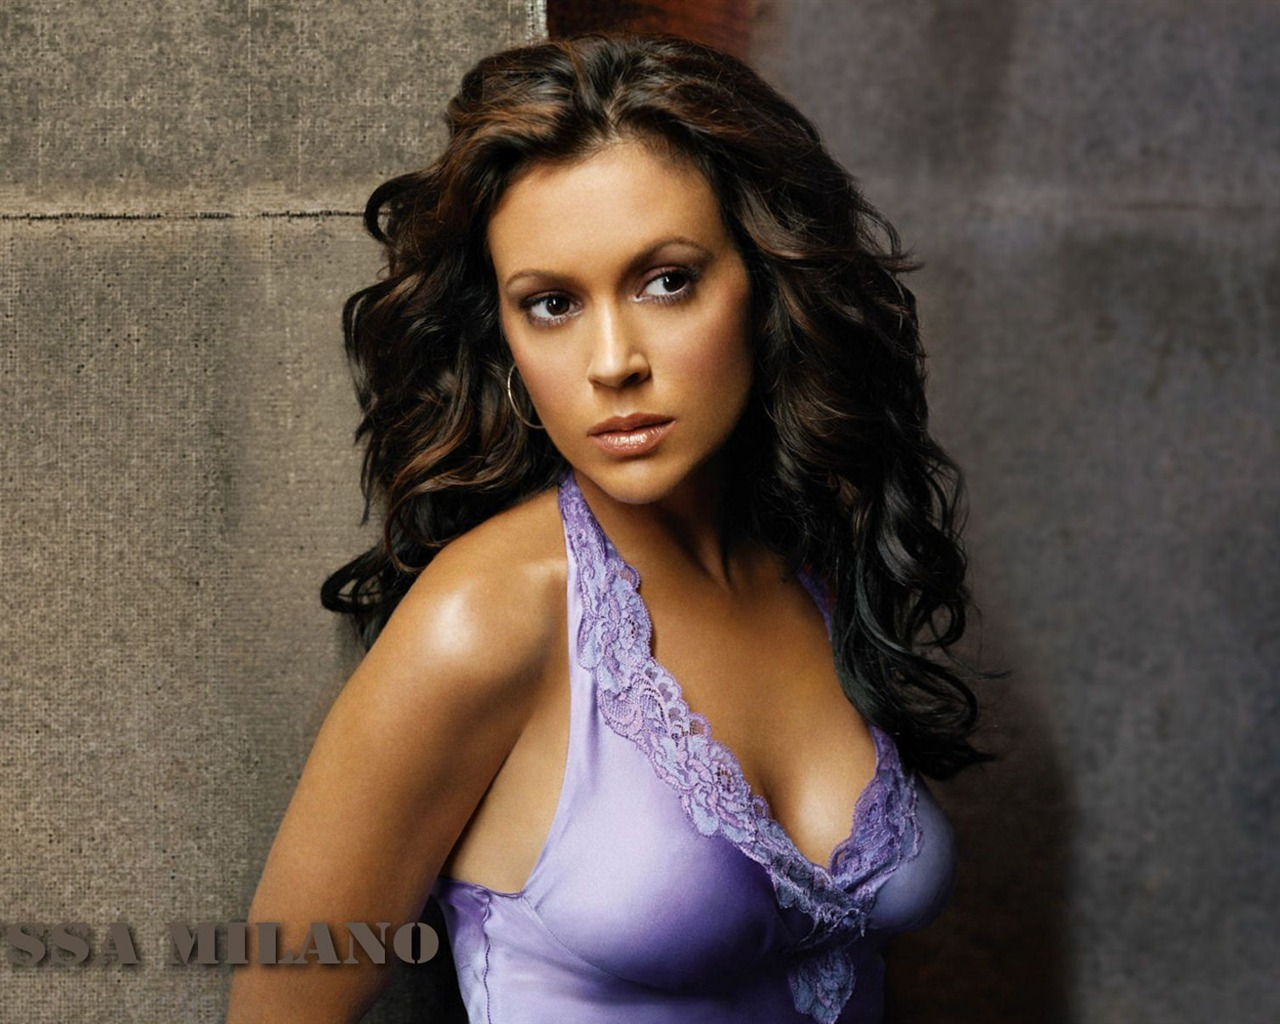 Alyssa Milano #030 - 1280x1024 Wallpapers Pictures Photos Images